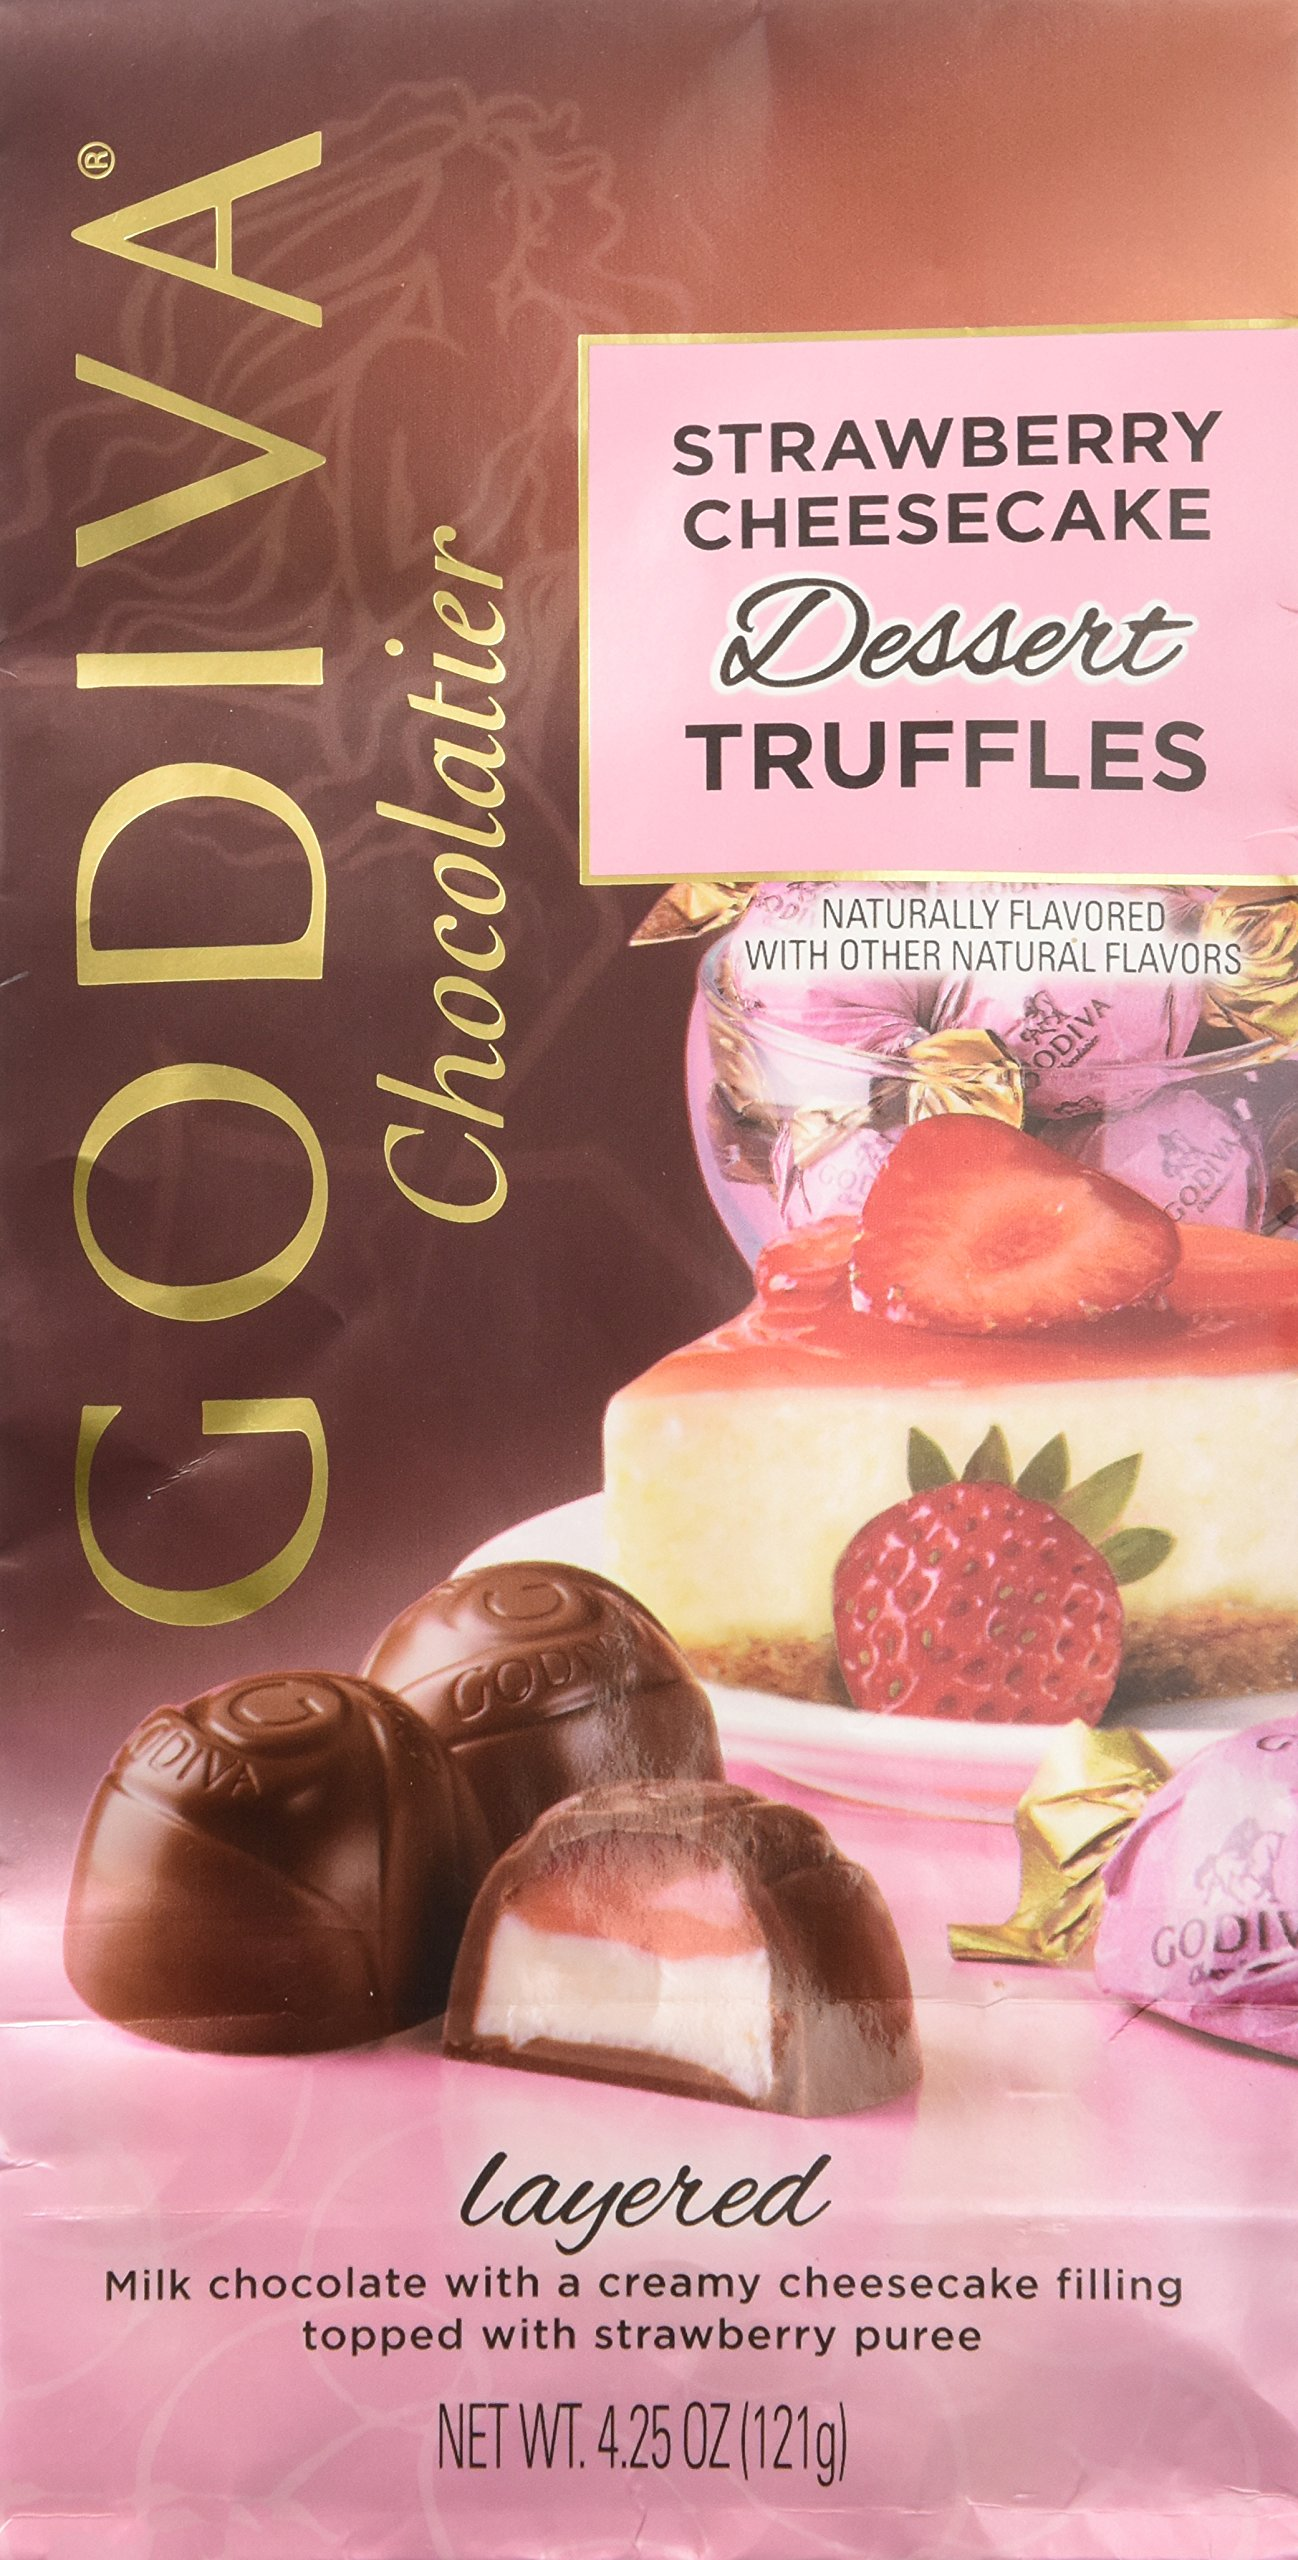 Godiva Chocolatier Strawberry Cheesecake Dessert Truffles Net Wt. 4.25 oz by GODIVA Chocolatier